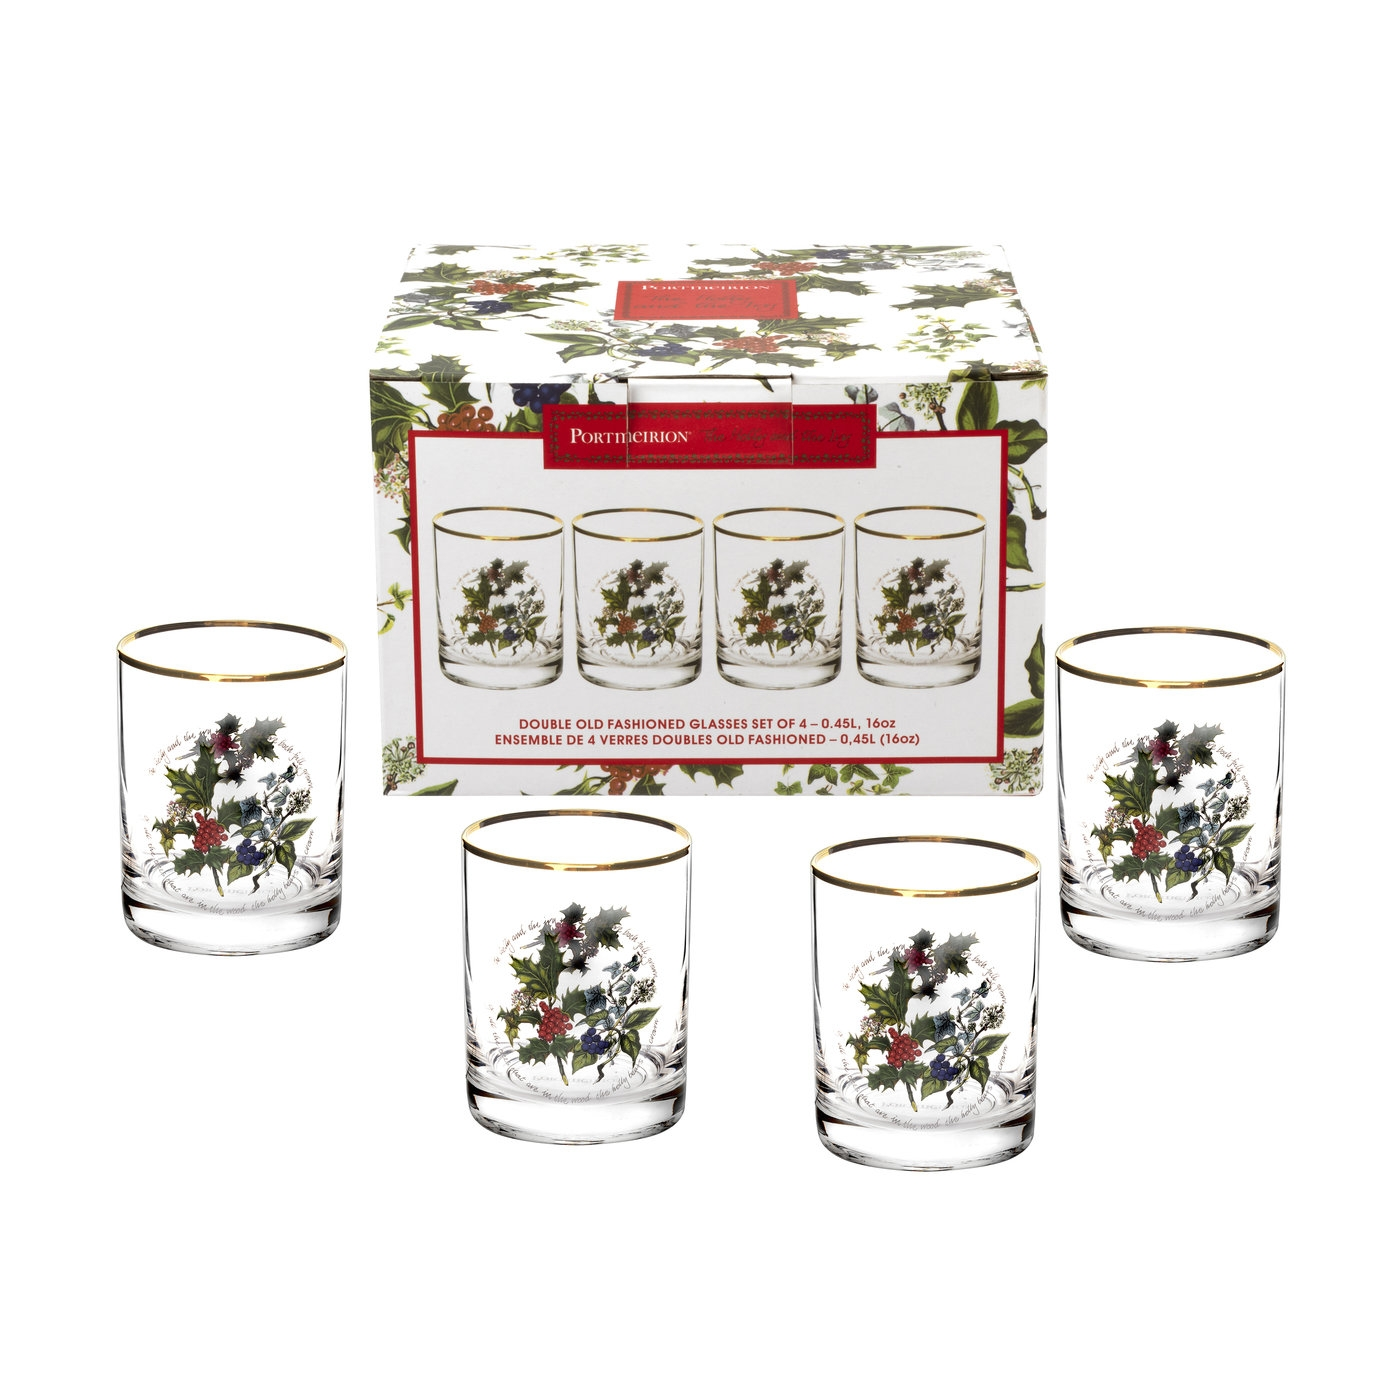 Portmeirion The Holly and The Ivy Set of 4 Double Old Fashioned image number 0